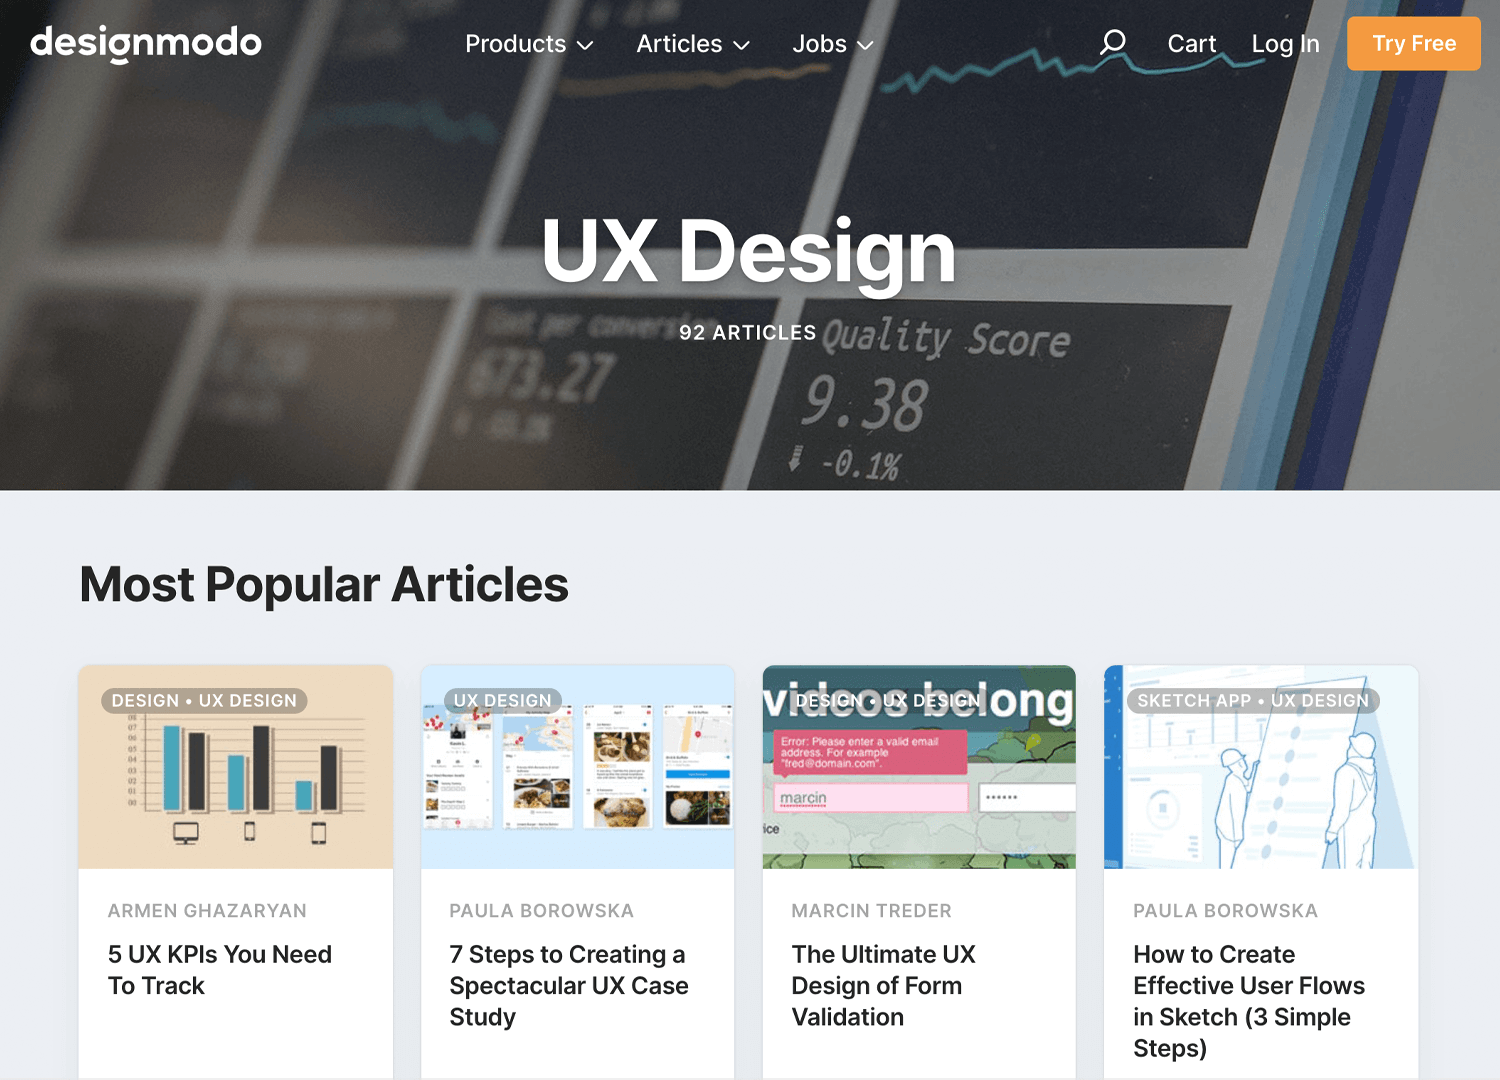 Best UX design blogs - Designmodo